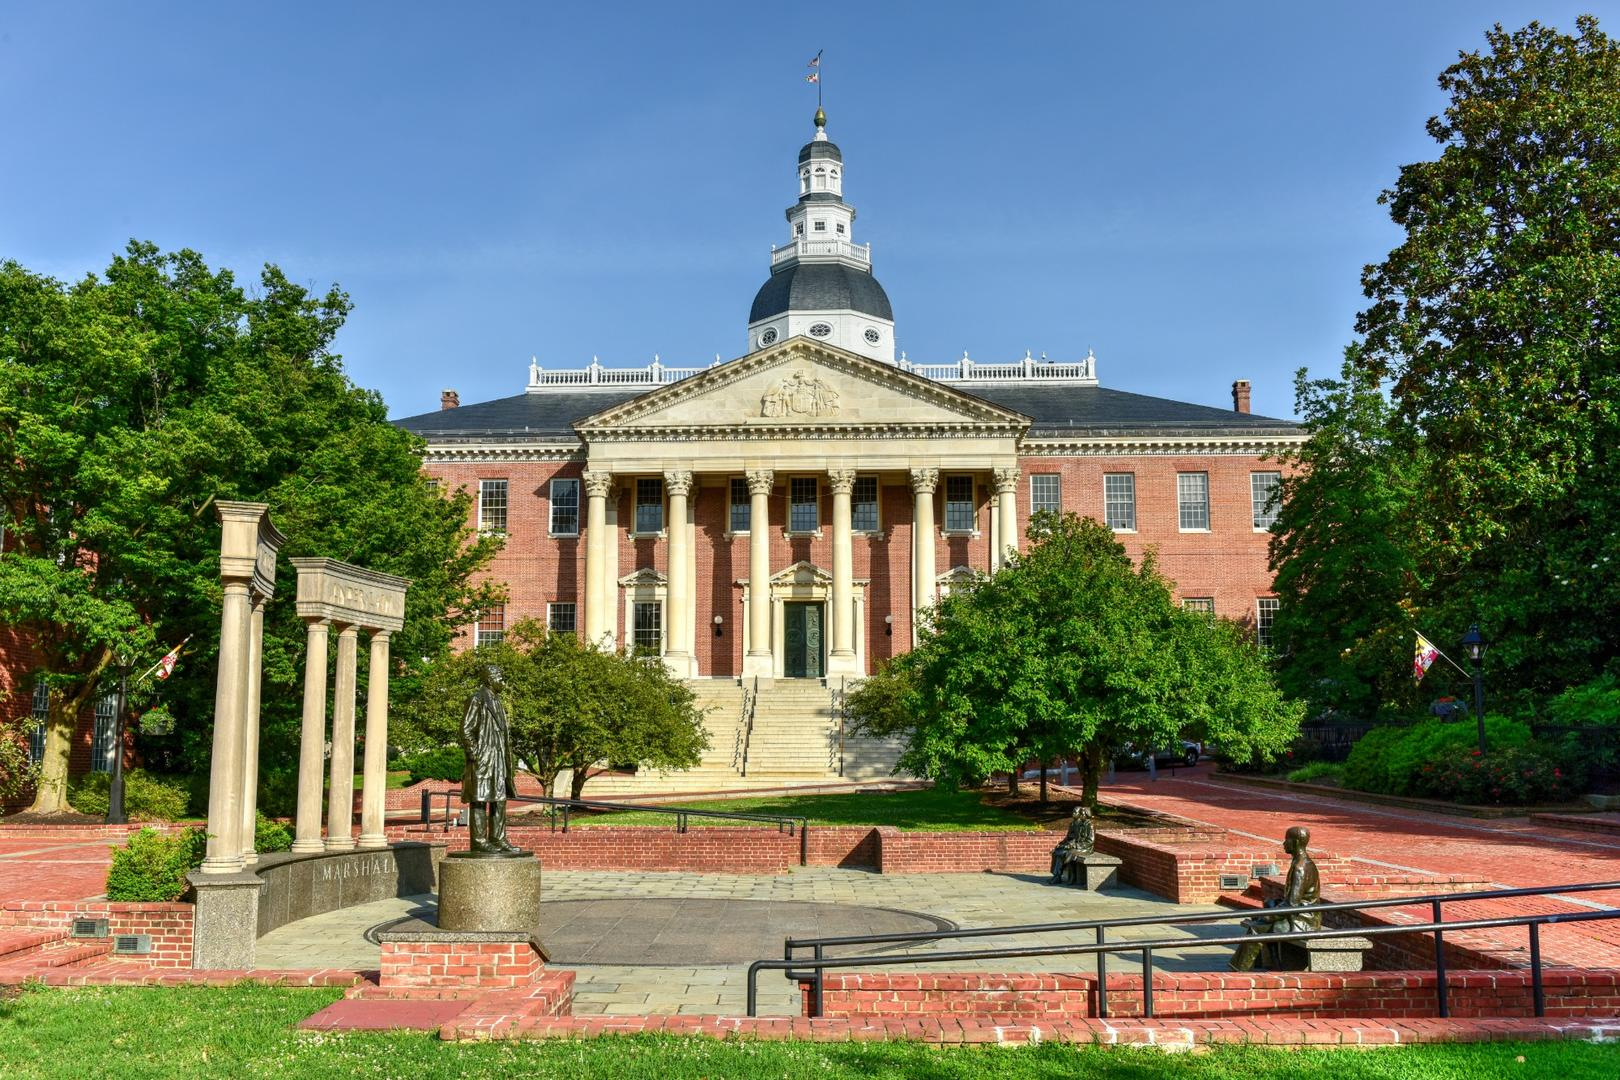 Nearby Maryland Statehouse